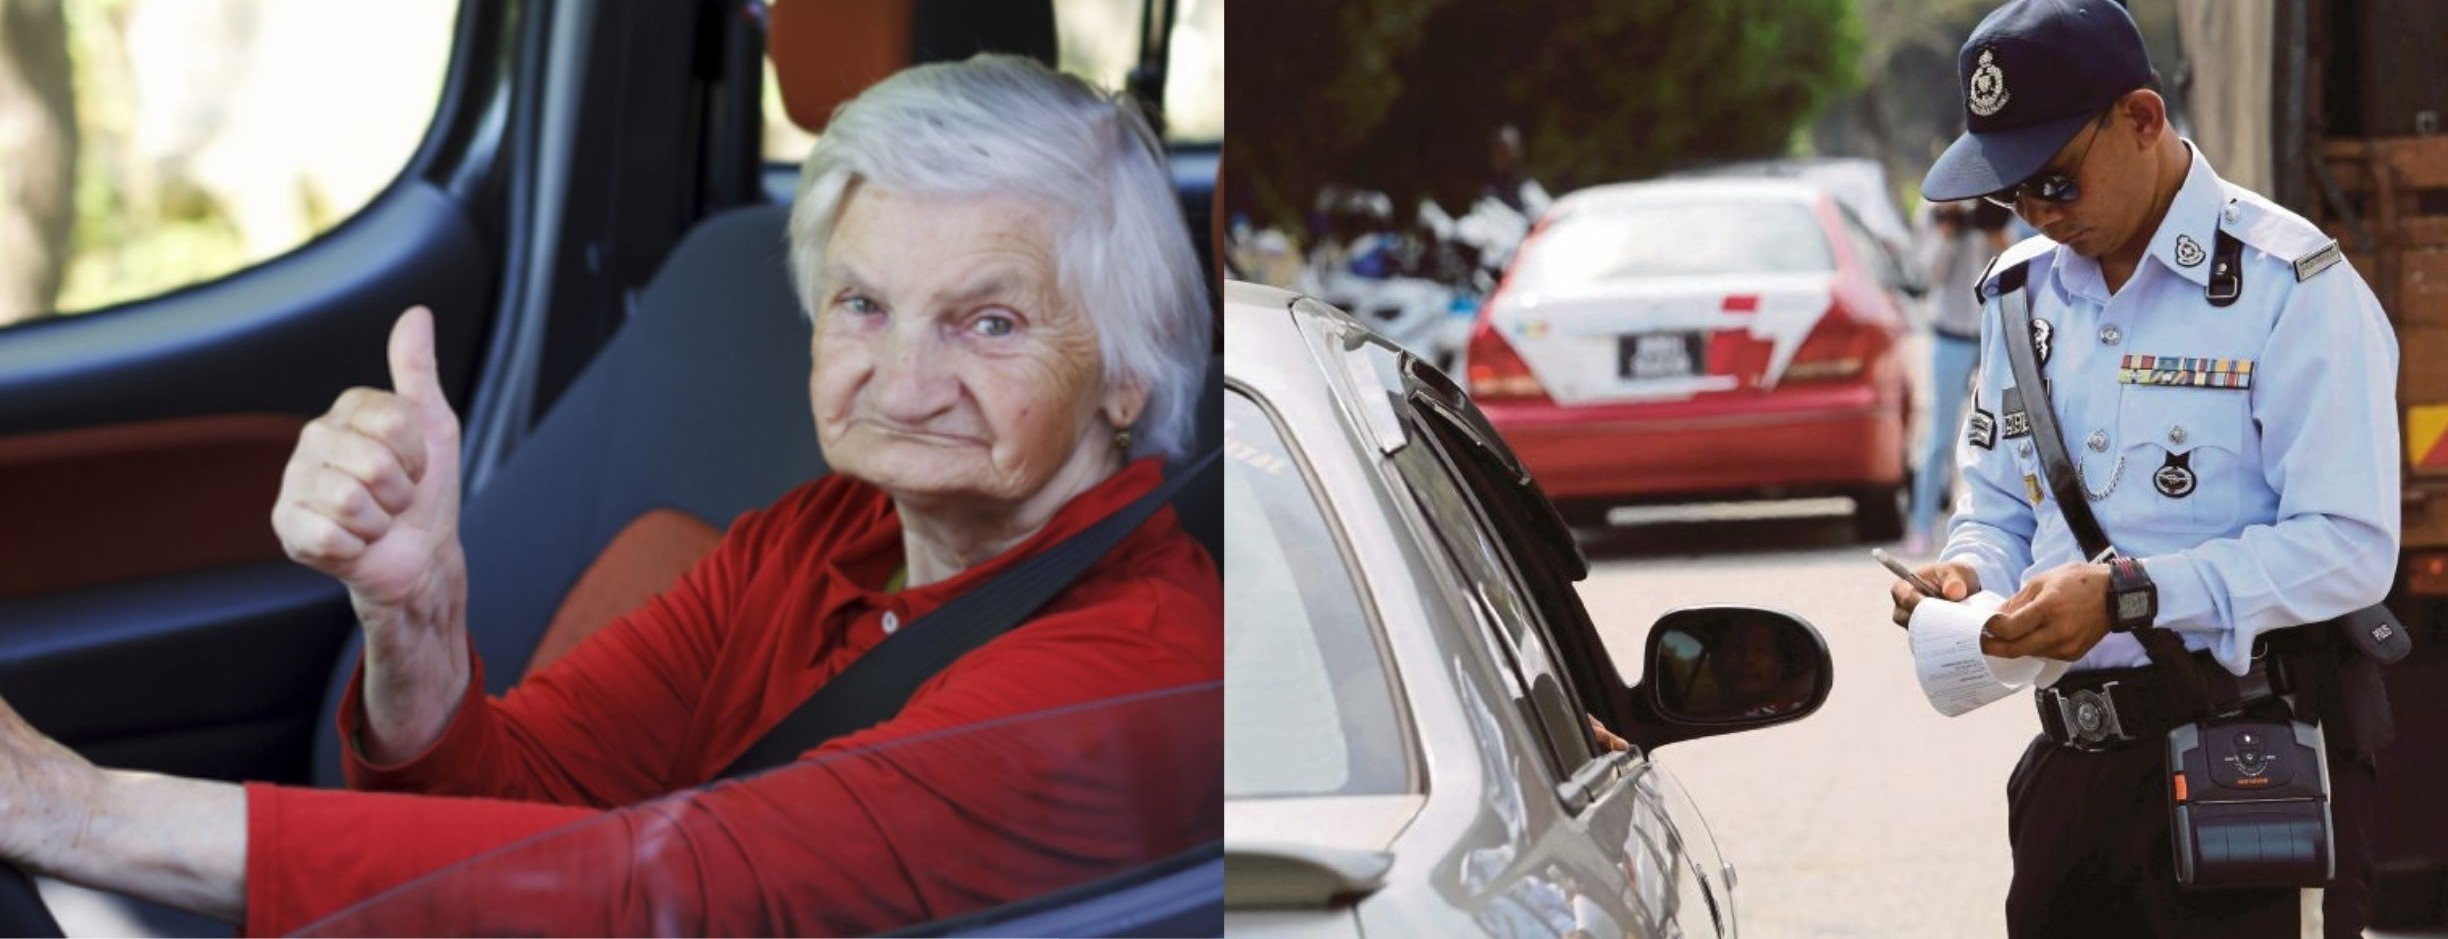 PDRM Suggests To Restrict Driving Licenses Of Senior Citizens